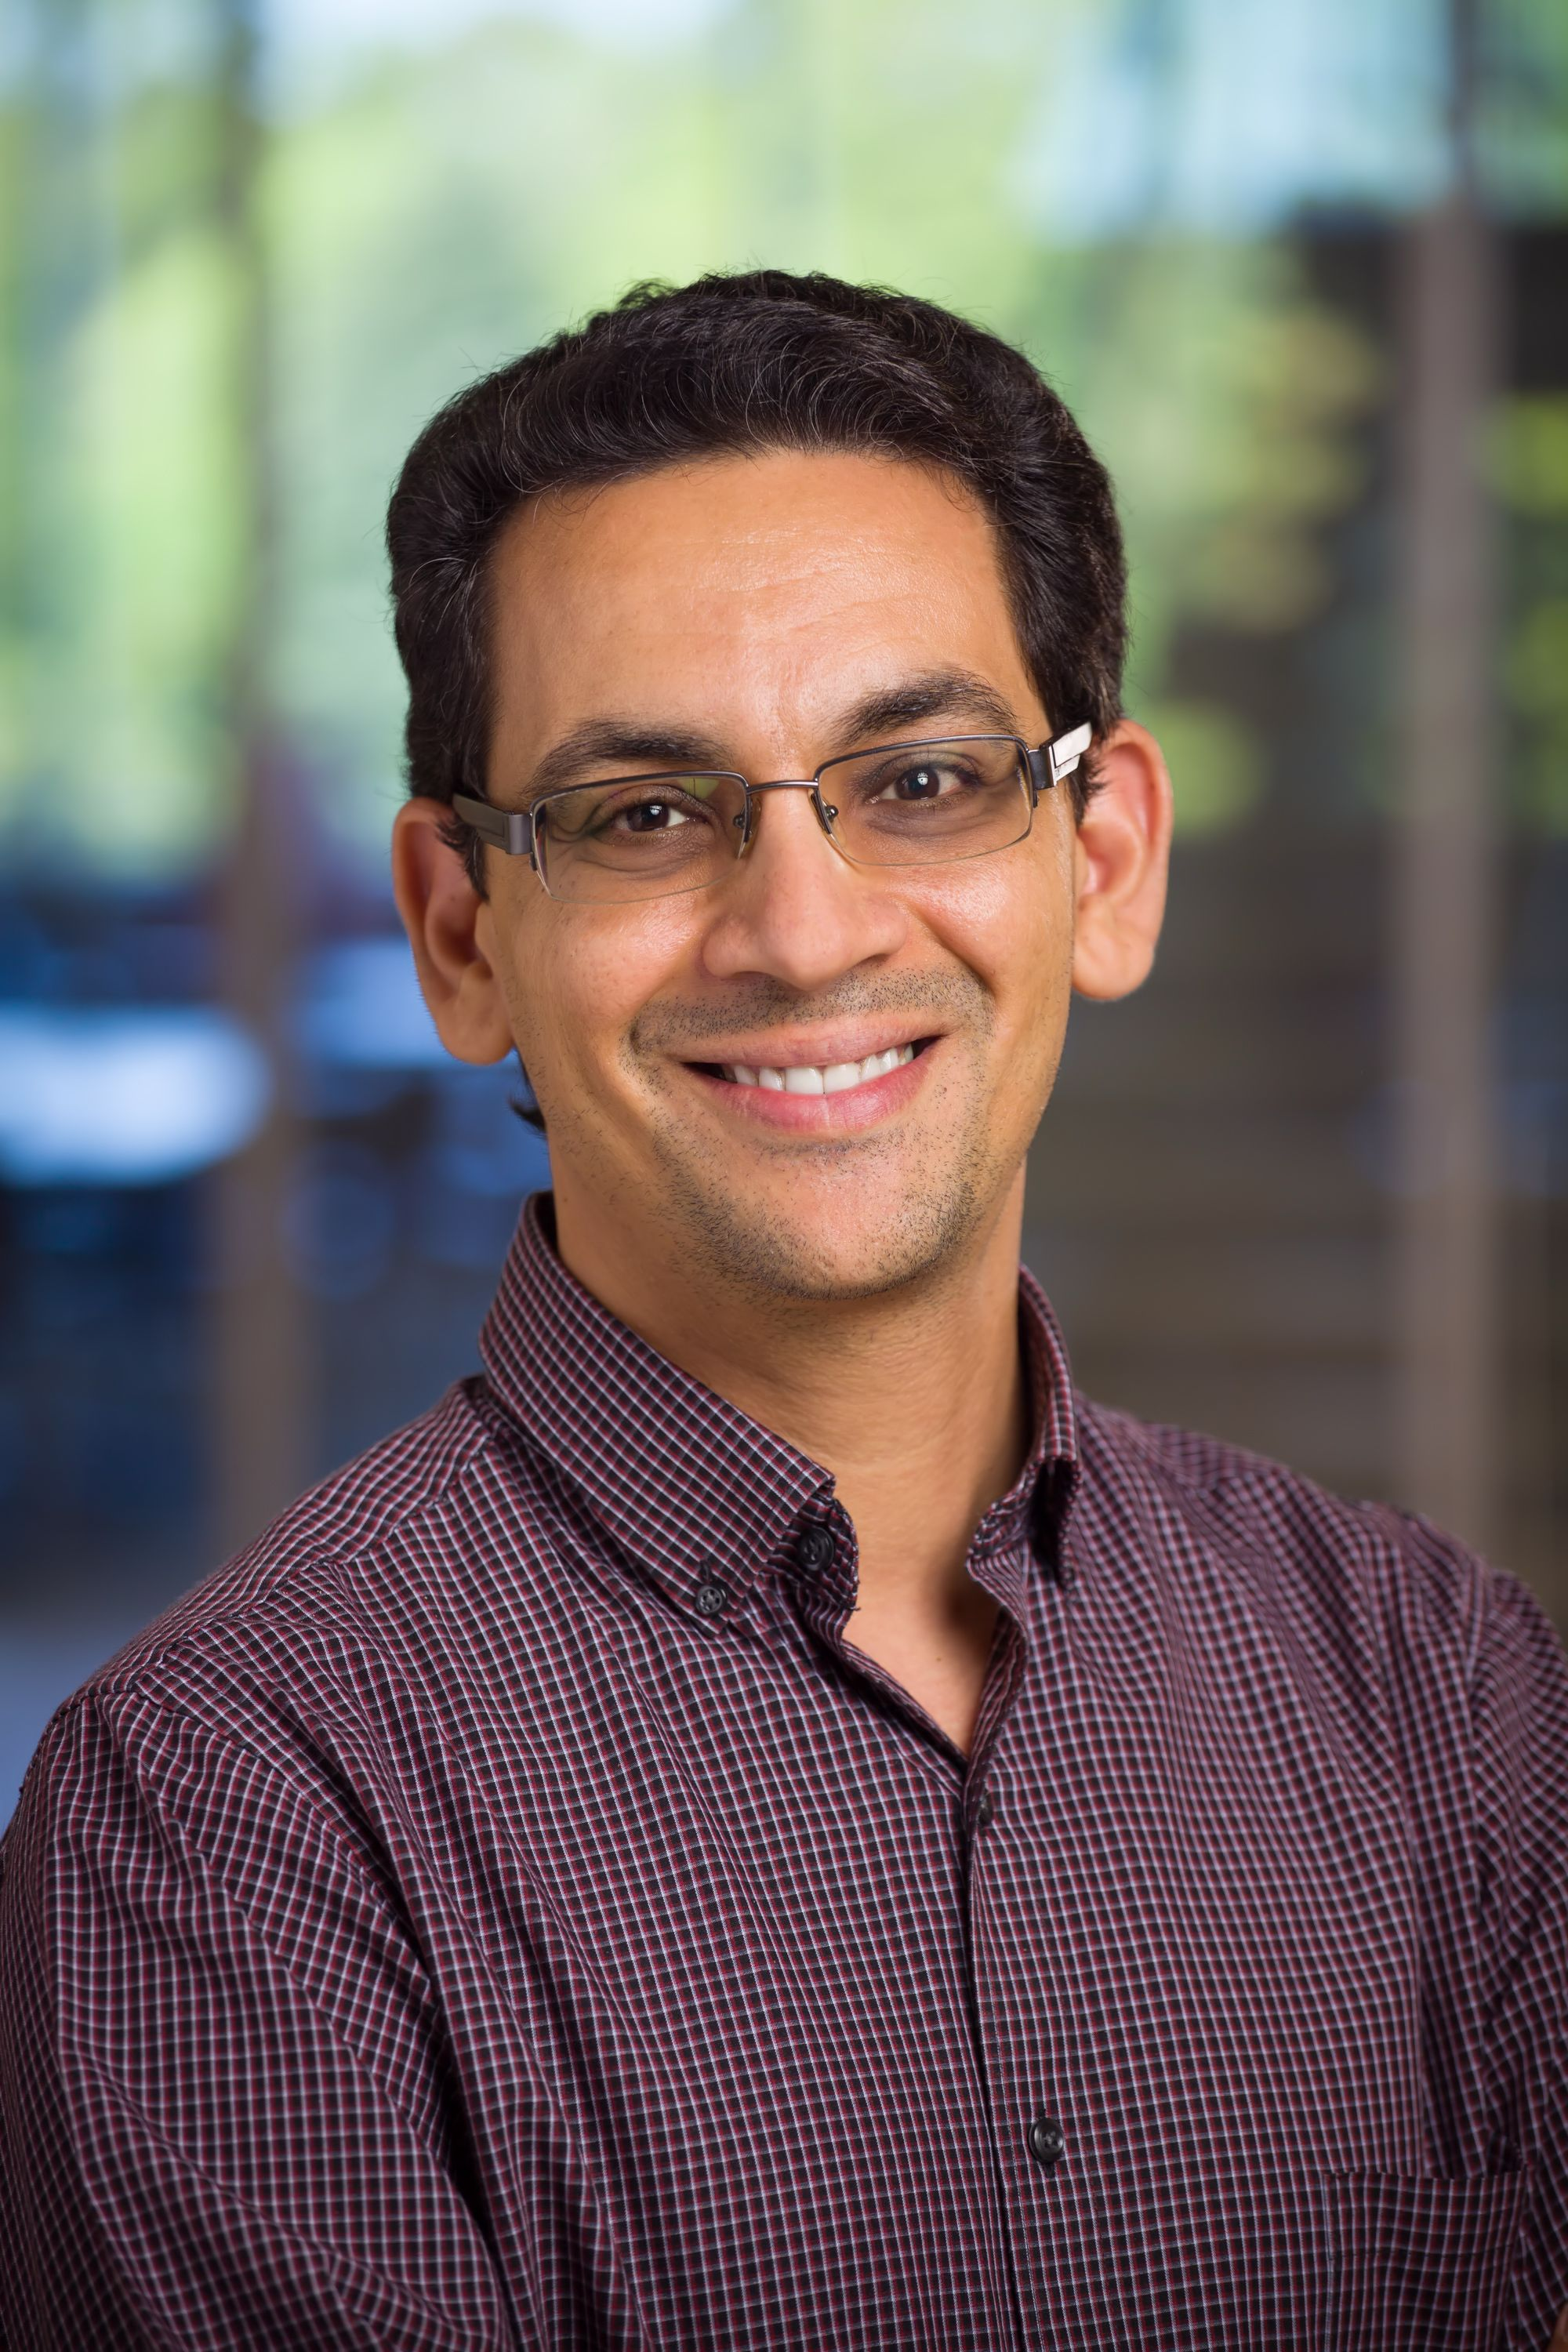 MCW professor publishes Nature article on cause of neurological disorders